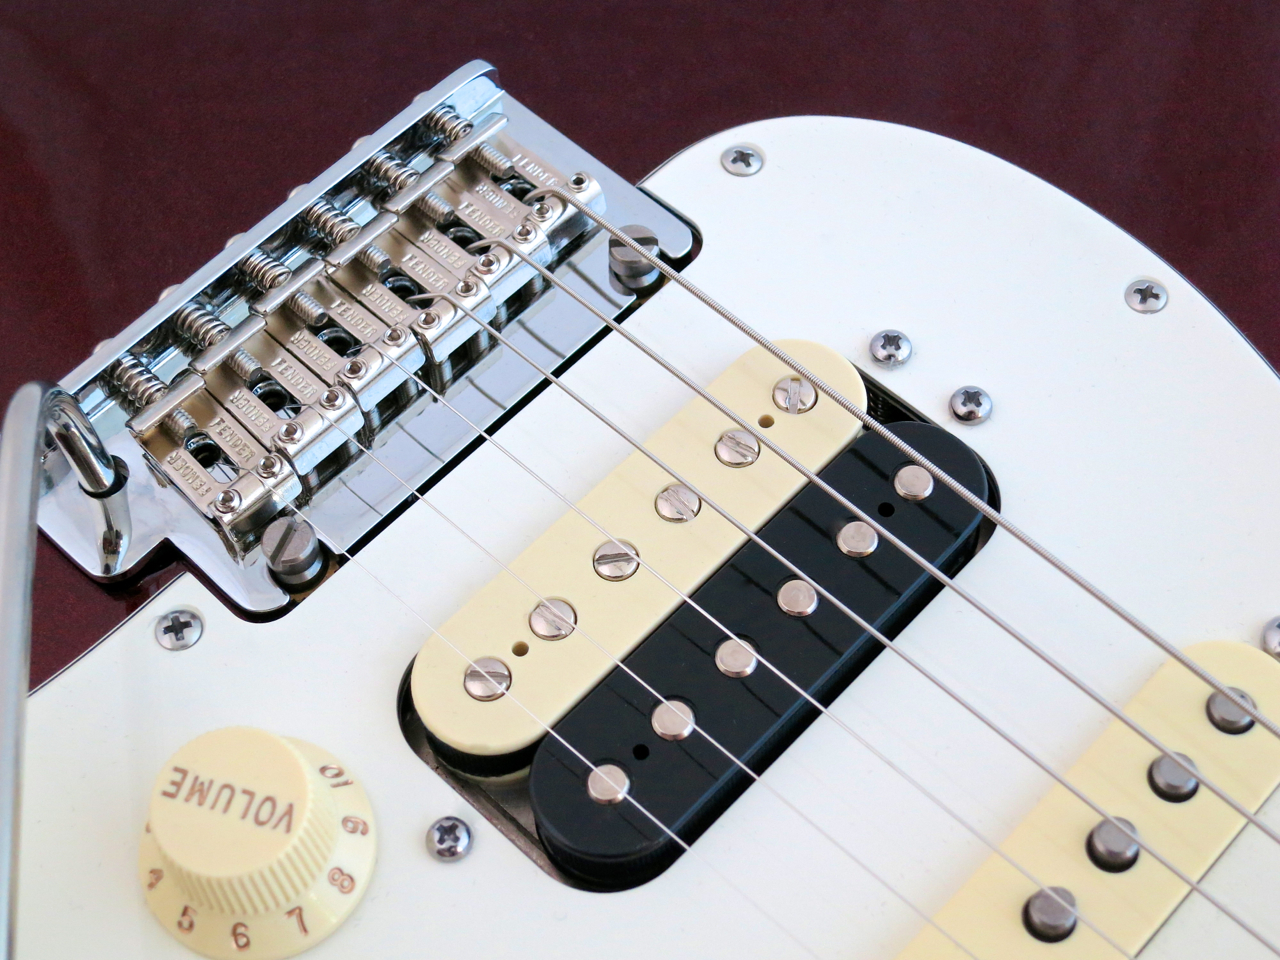 Tone Control Will Affect The Bridge Pickup As Well As The Middle